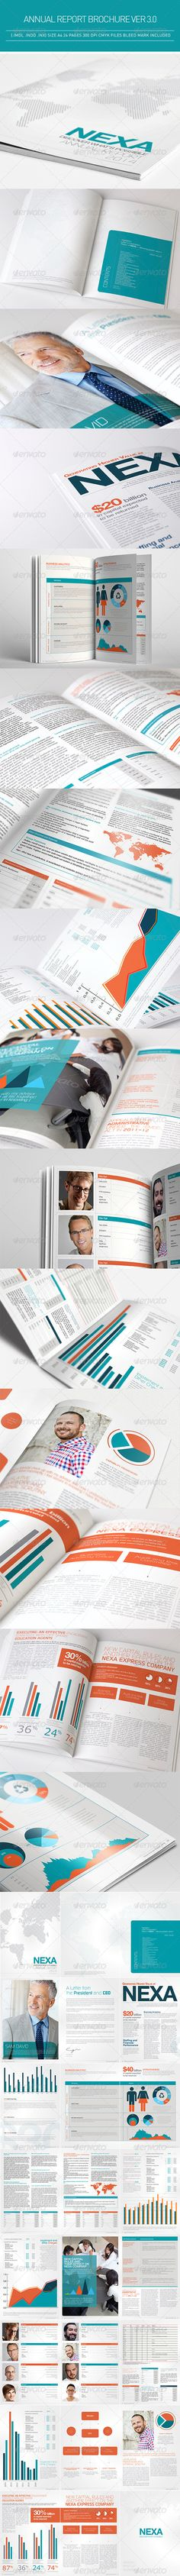 Annual Report Brochure Ver 3.0 - Corporate Brochures